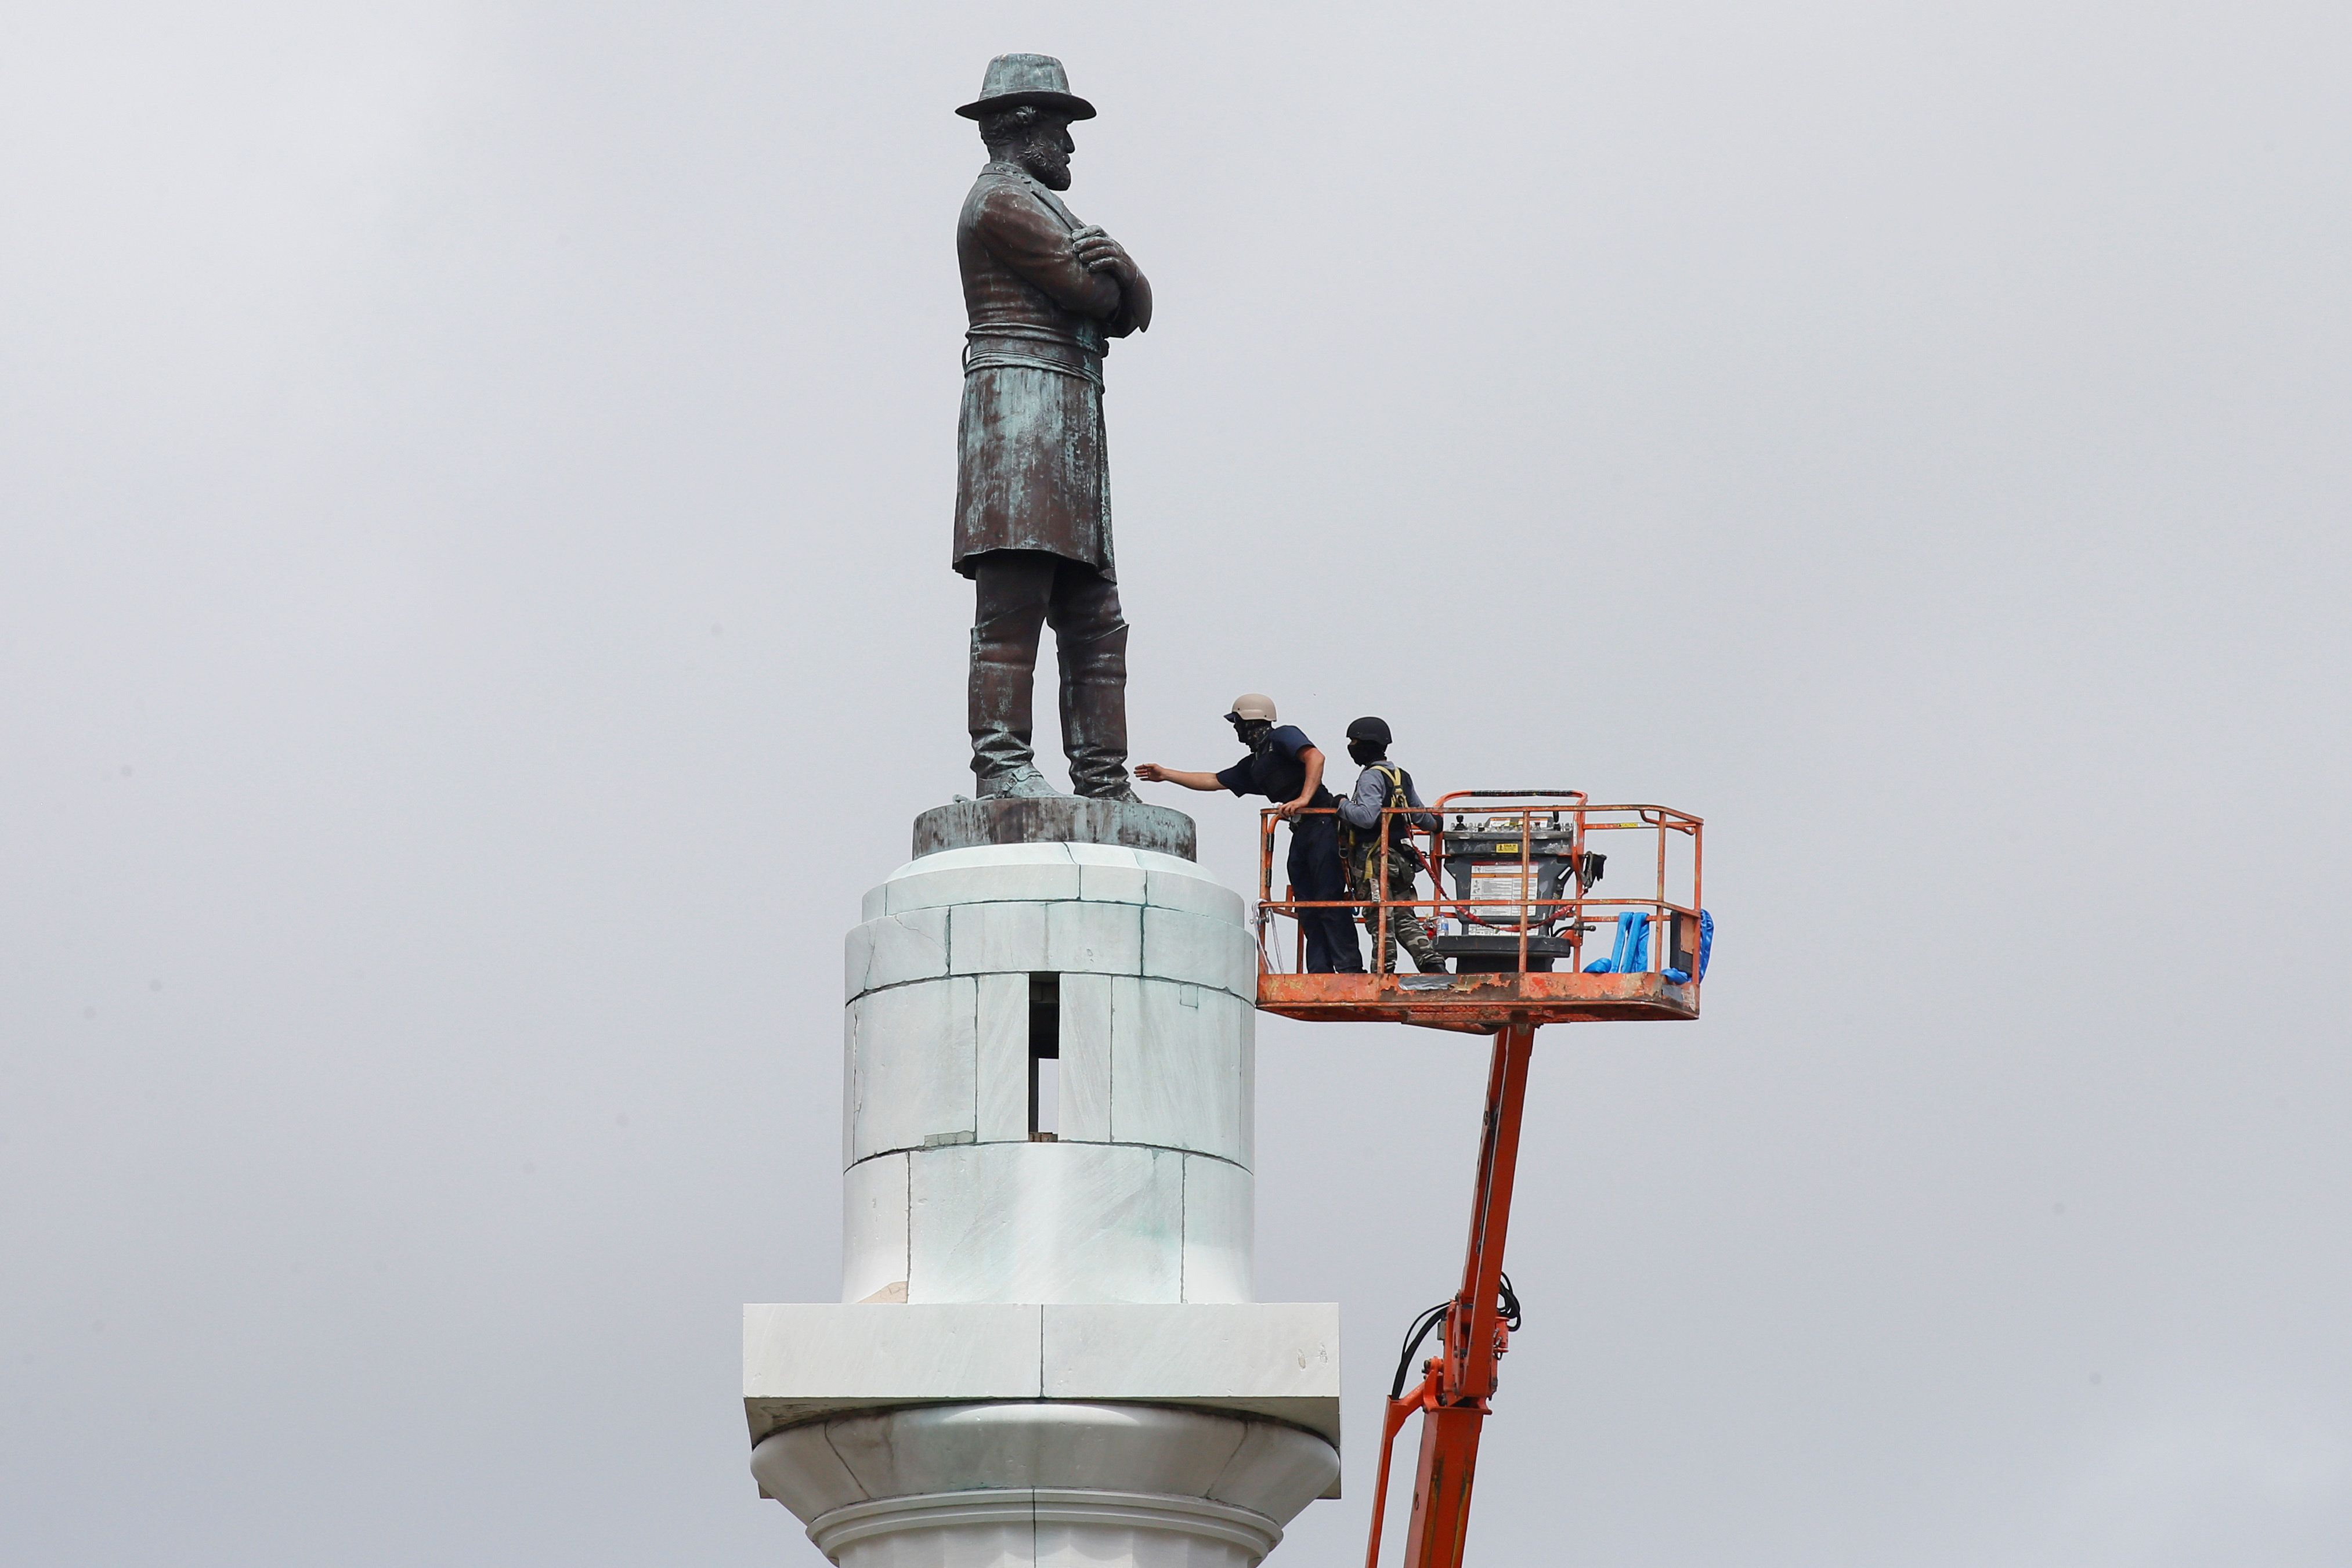 Construction crews prepare a monument of Robert E. Lee, who was a general in the Confederate Army, for removal in New Orleans, Louisiana, U.S., May 19, 2017. REUTERS/Jonathan Bachman